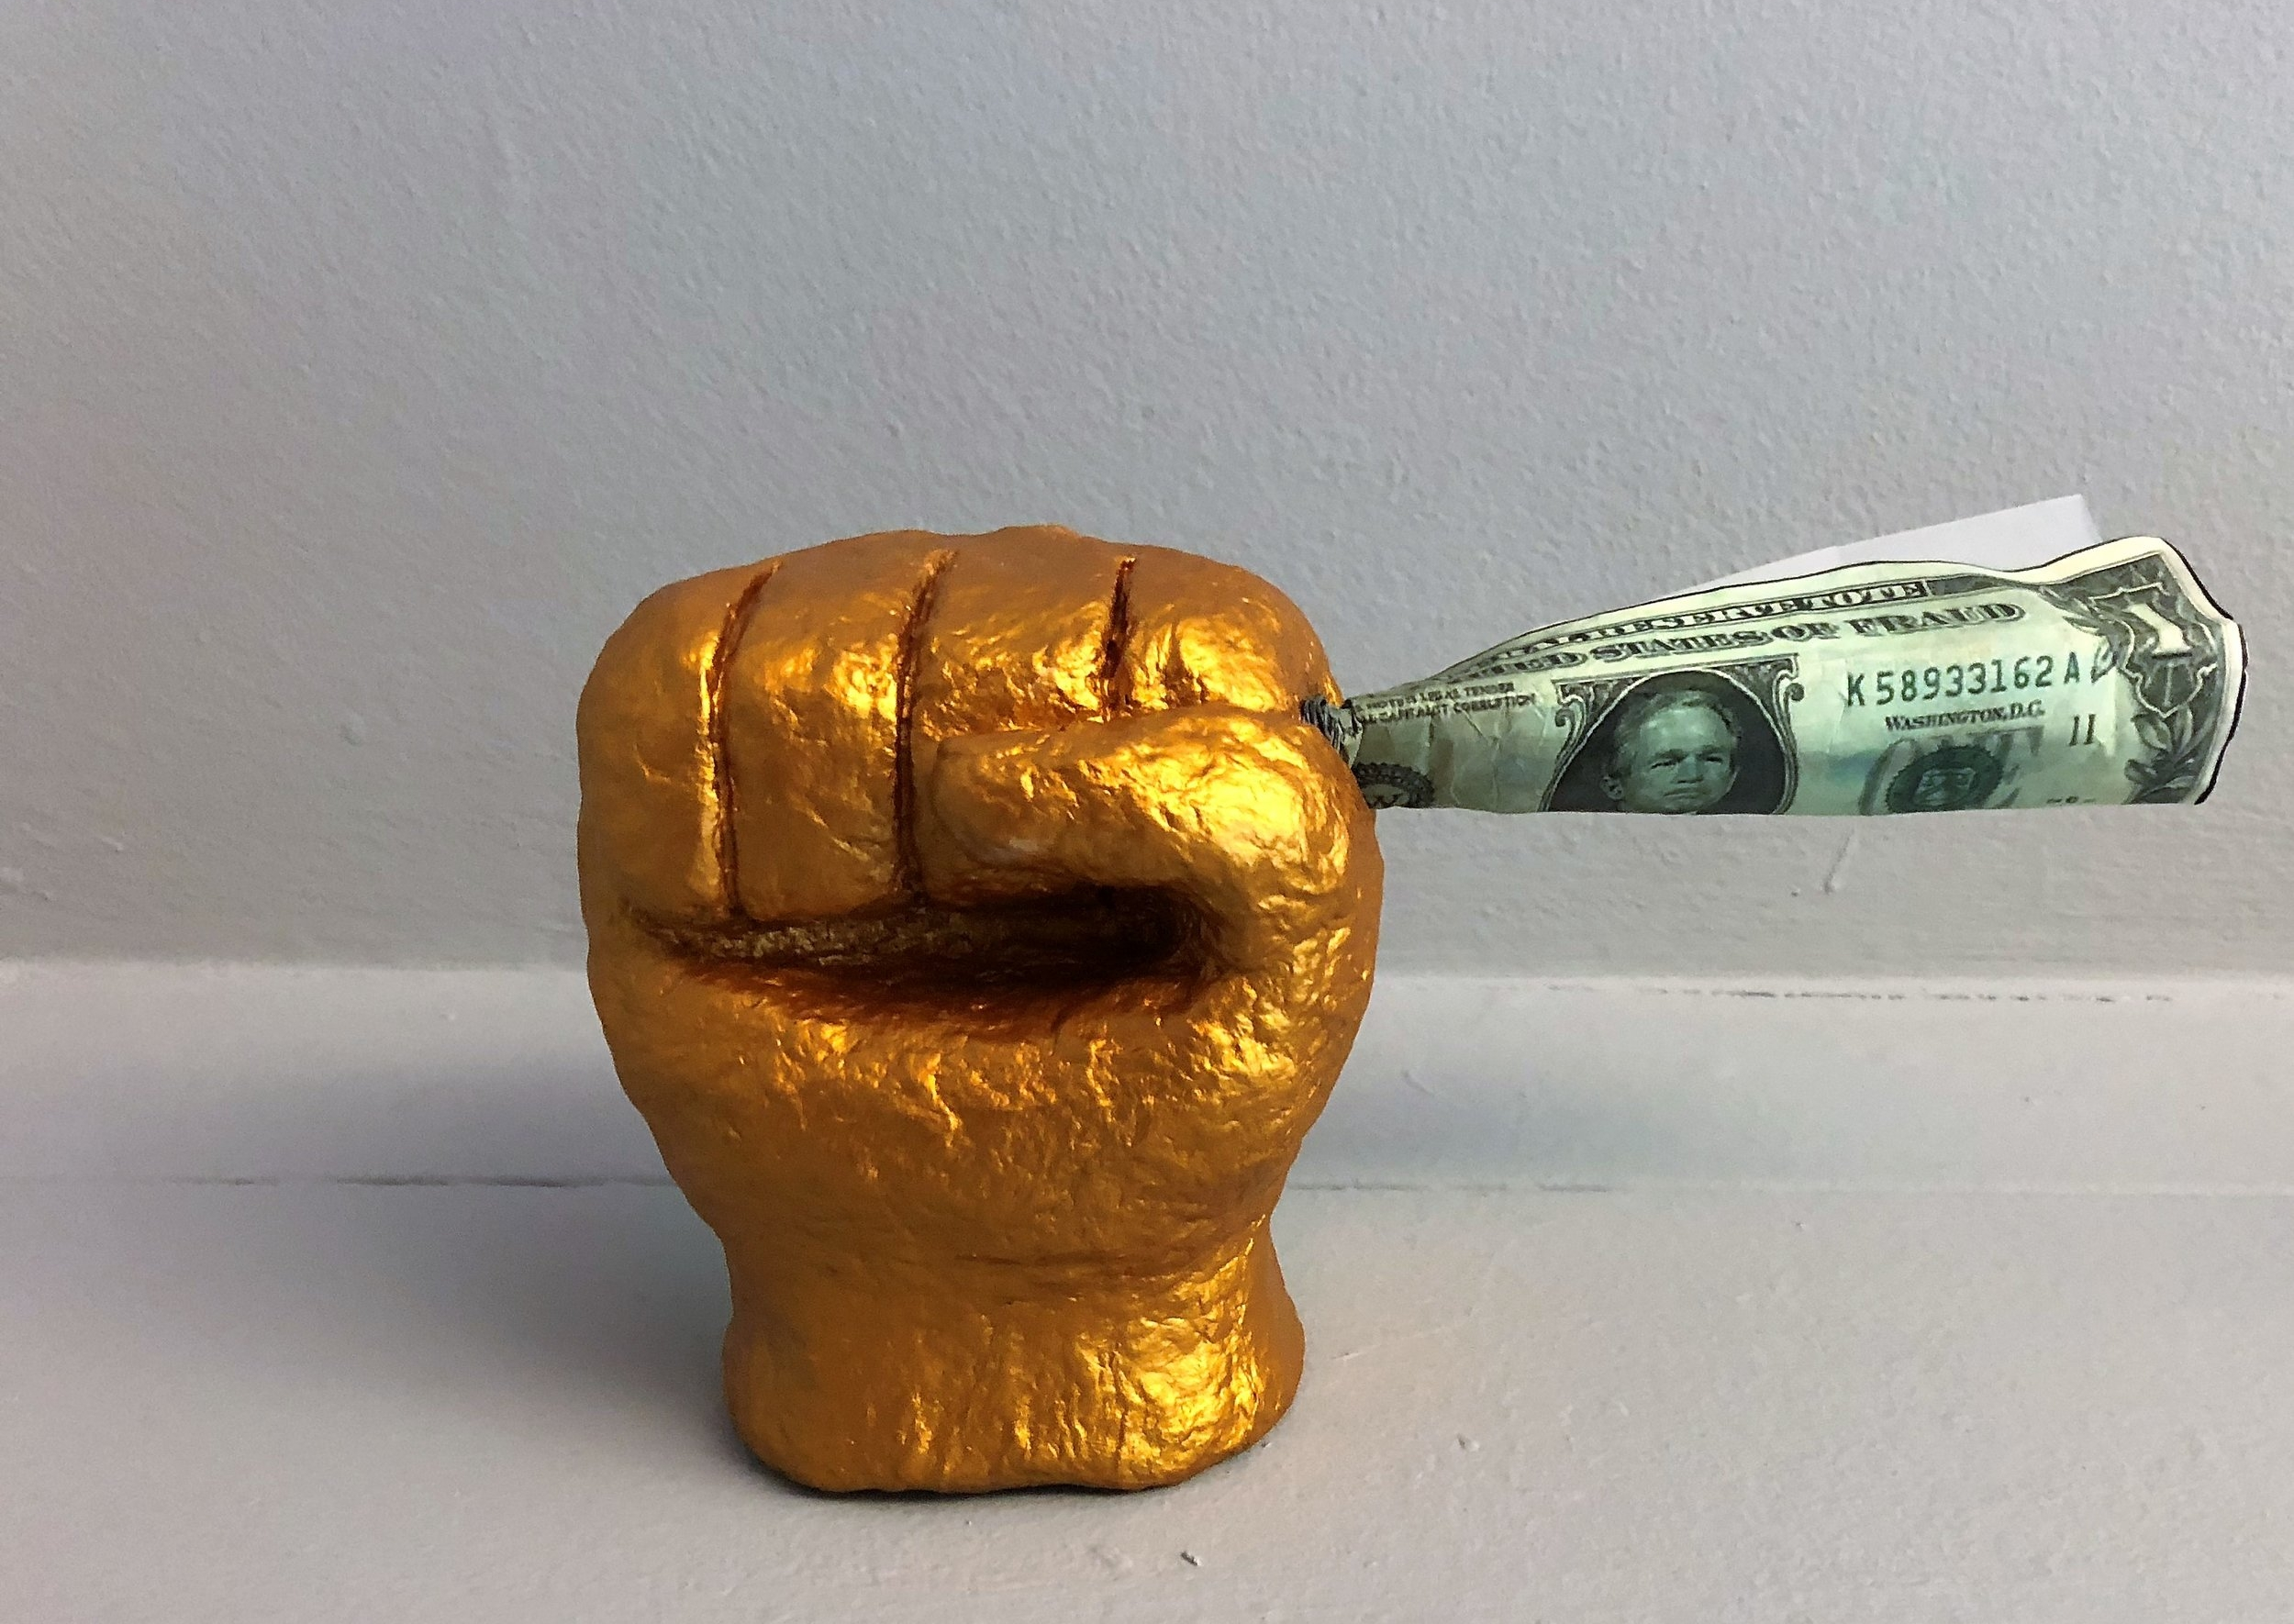 Fist Holding Money   This piece came to me while looking at George W. Bush face on the Dollar Bill. The thought of him and Dick Chaney investing in private prisons captures the capitalization of justice. The golden power fist holds the money to be made in prisons.  I have been locked in solitary confinement for over 25 years with limited access to the outside world. Despite my obvious indigency, I am tapped financially for music, calls, food, and more. I even pay a medical co-pay to McKesson Pharmaceuticals, the company that will also provide the drug to execute me.    Sold